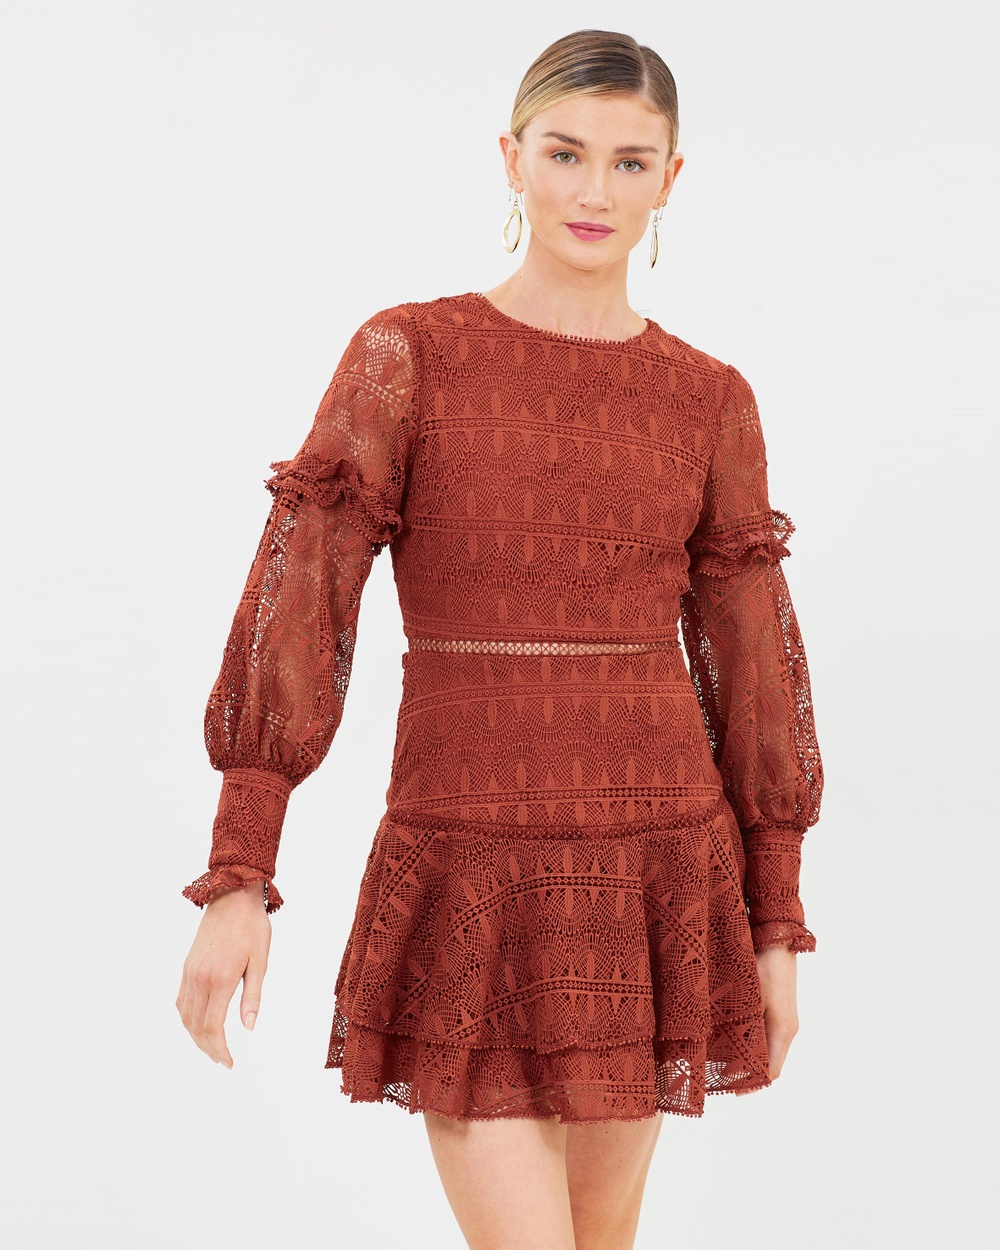 Ministry of Style Camellia Mini Dress Dresses Terracotta Camellia Mini Dress